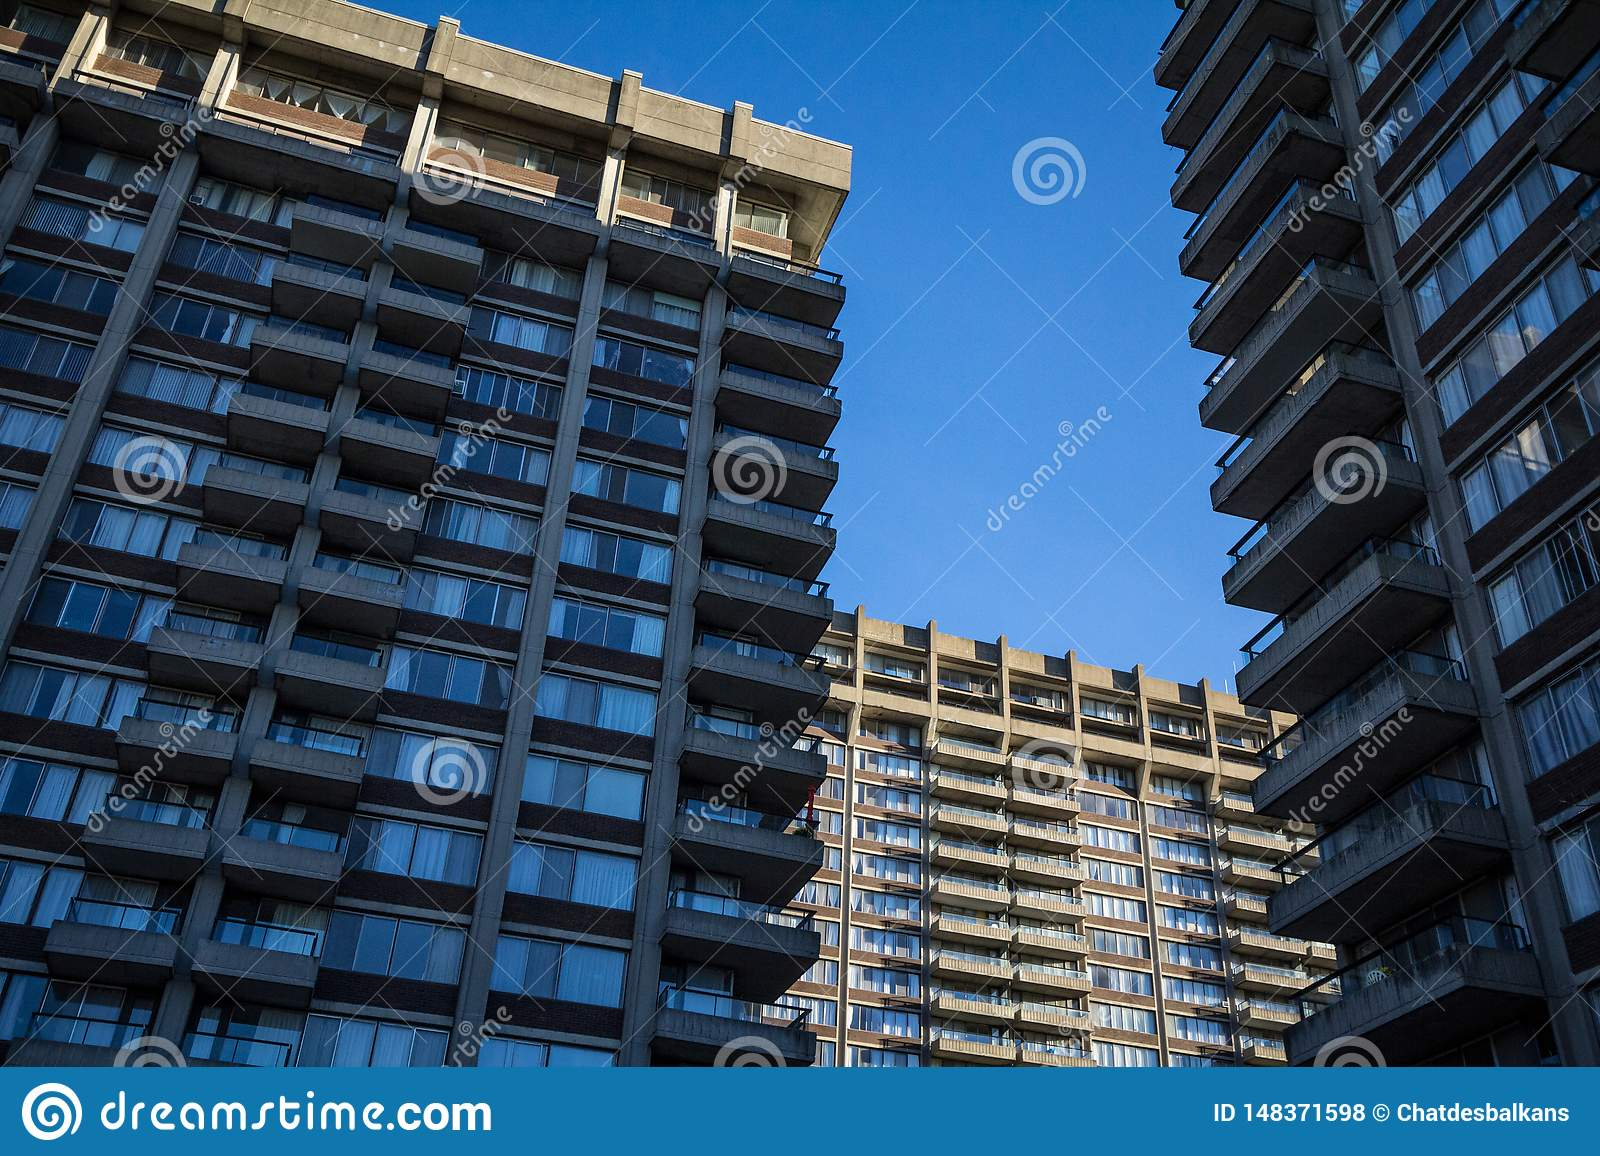 Old Residential High rise towers from North America, typical from the Brutalist Architecture movement called brutalism